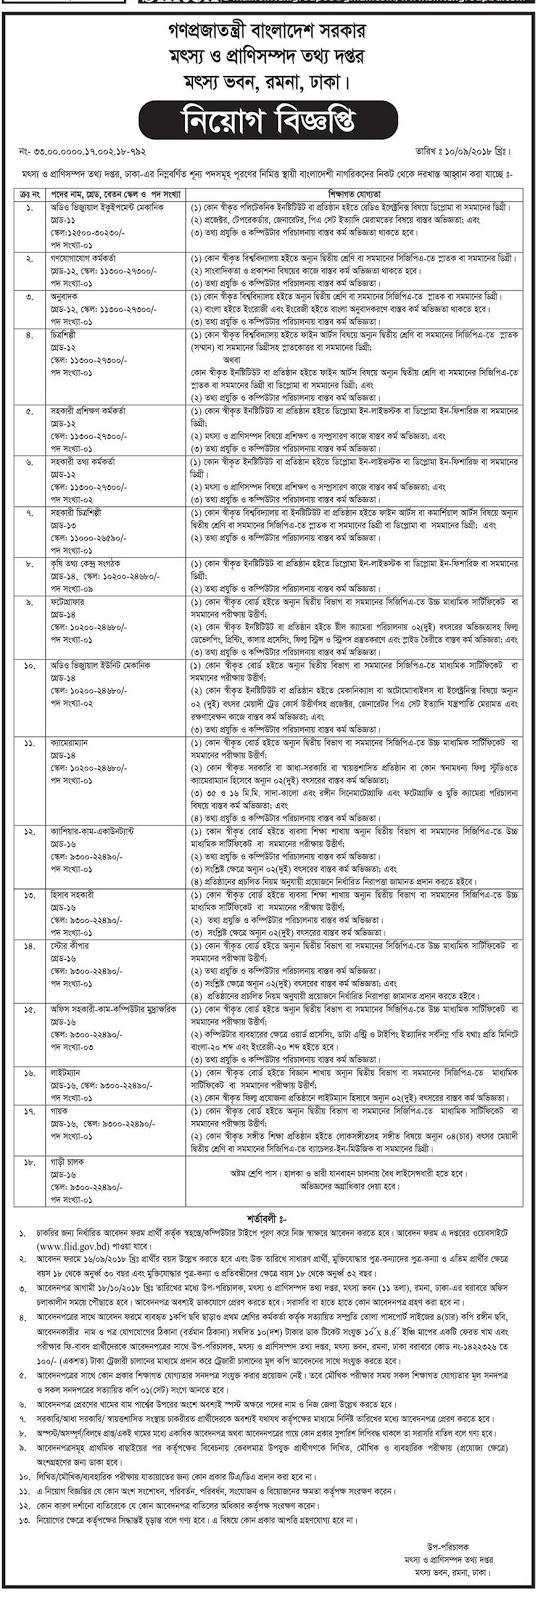 Department of Fisheries and Livestock Information, Job Circular 2018